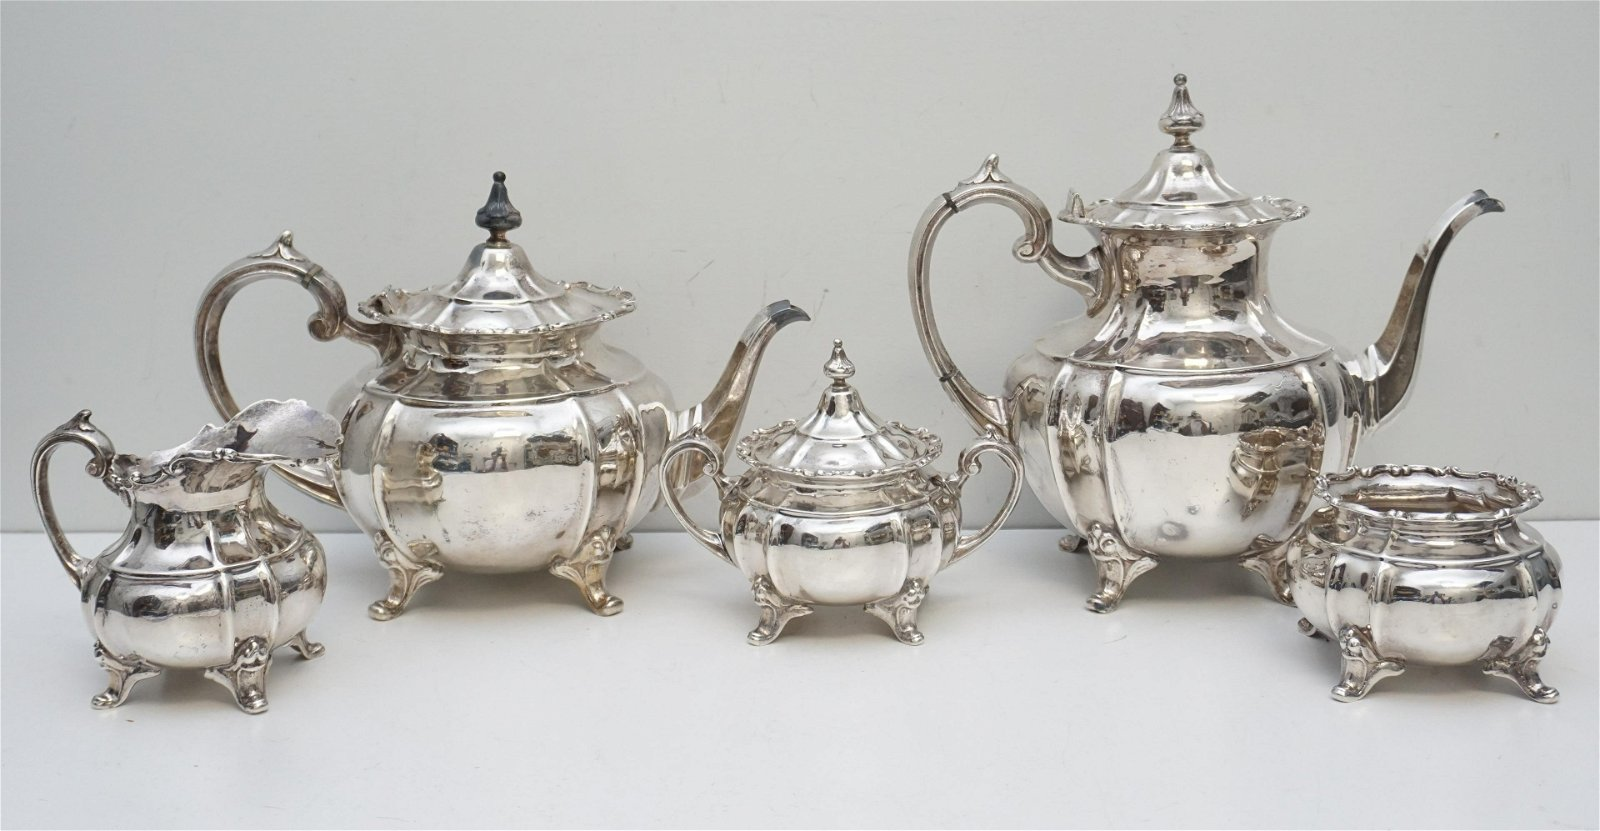 5 PC STERLING SILVER COFFEE / TEA SERVICE